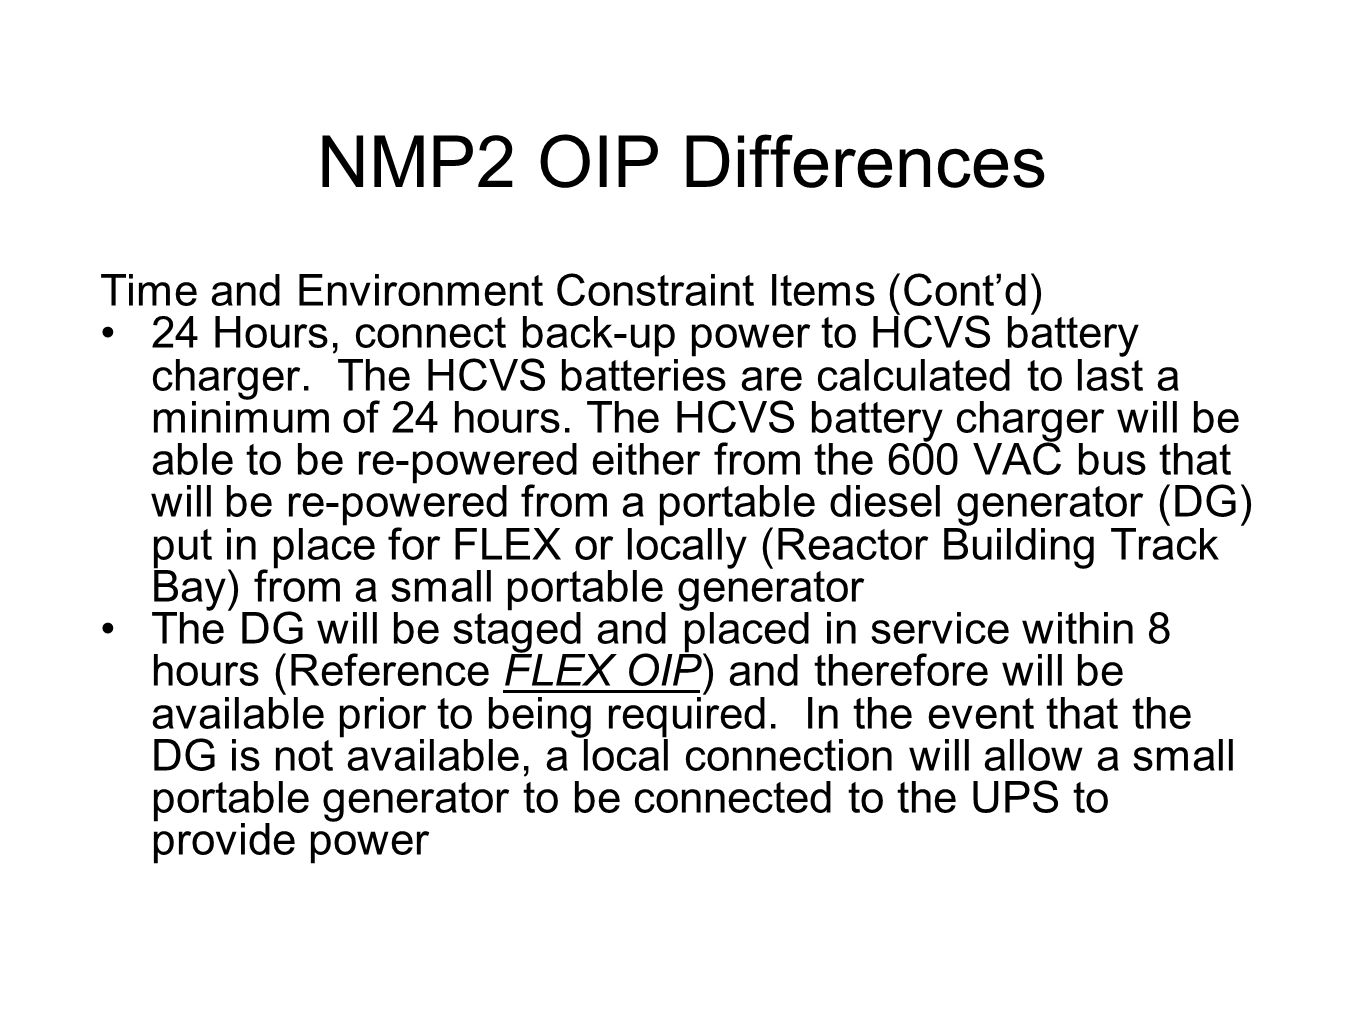 NMP2 OIP Differences Time and Environment Constraint Items (Cont'd) 24 Hours, connect back-up power to HCVS battery charger. The HCVS batteries are ca